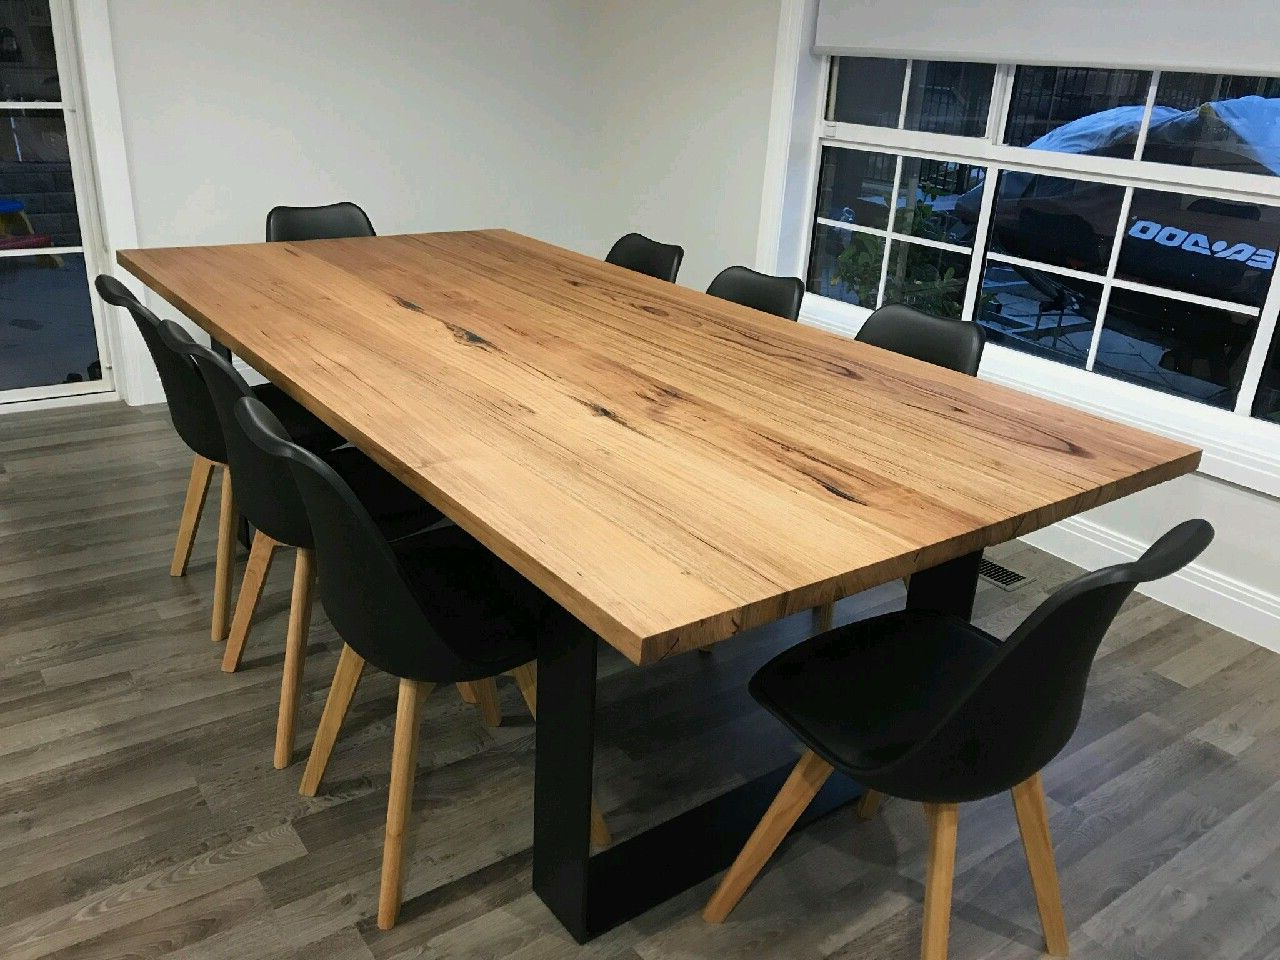 Dining Tables With Black U Legs Throughout Most Current Recycled Messmate Dining Table With Black Flat Bar Metal (View 11 of 30)